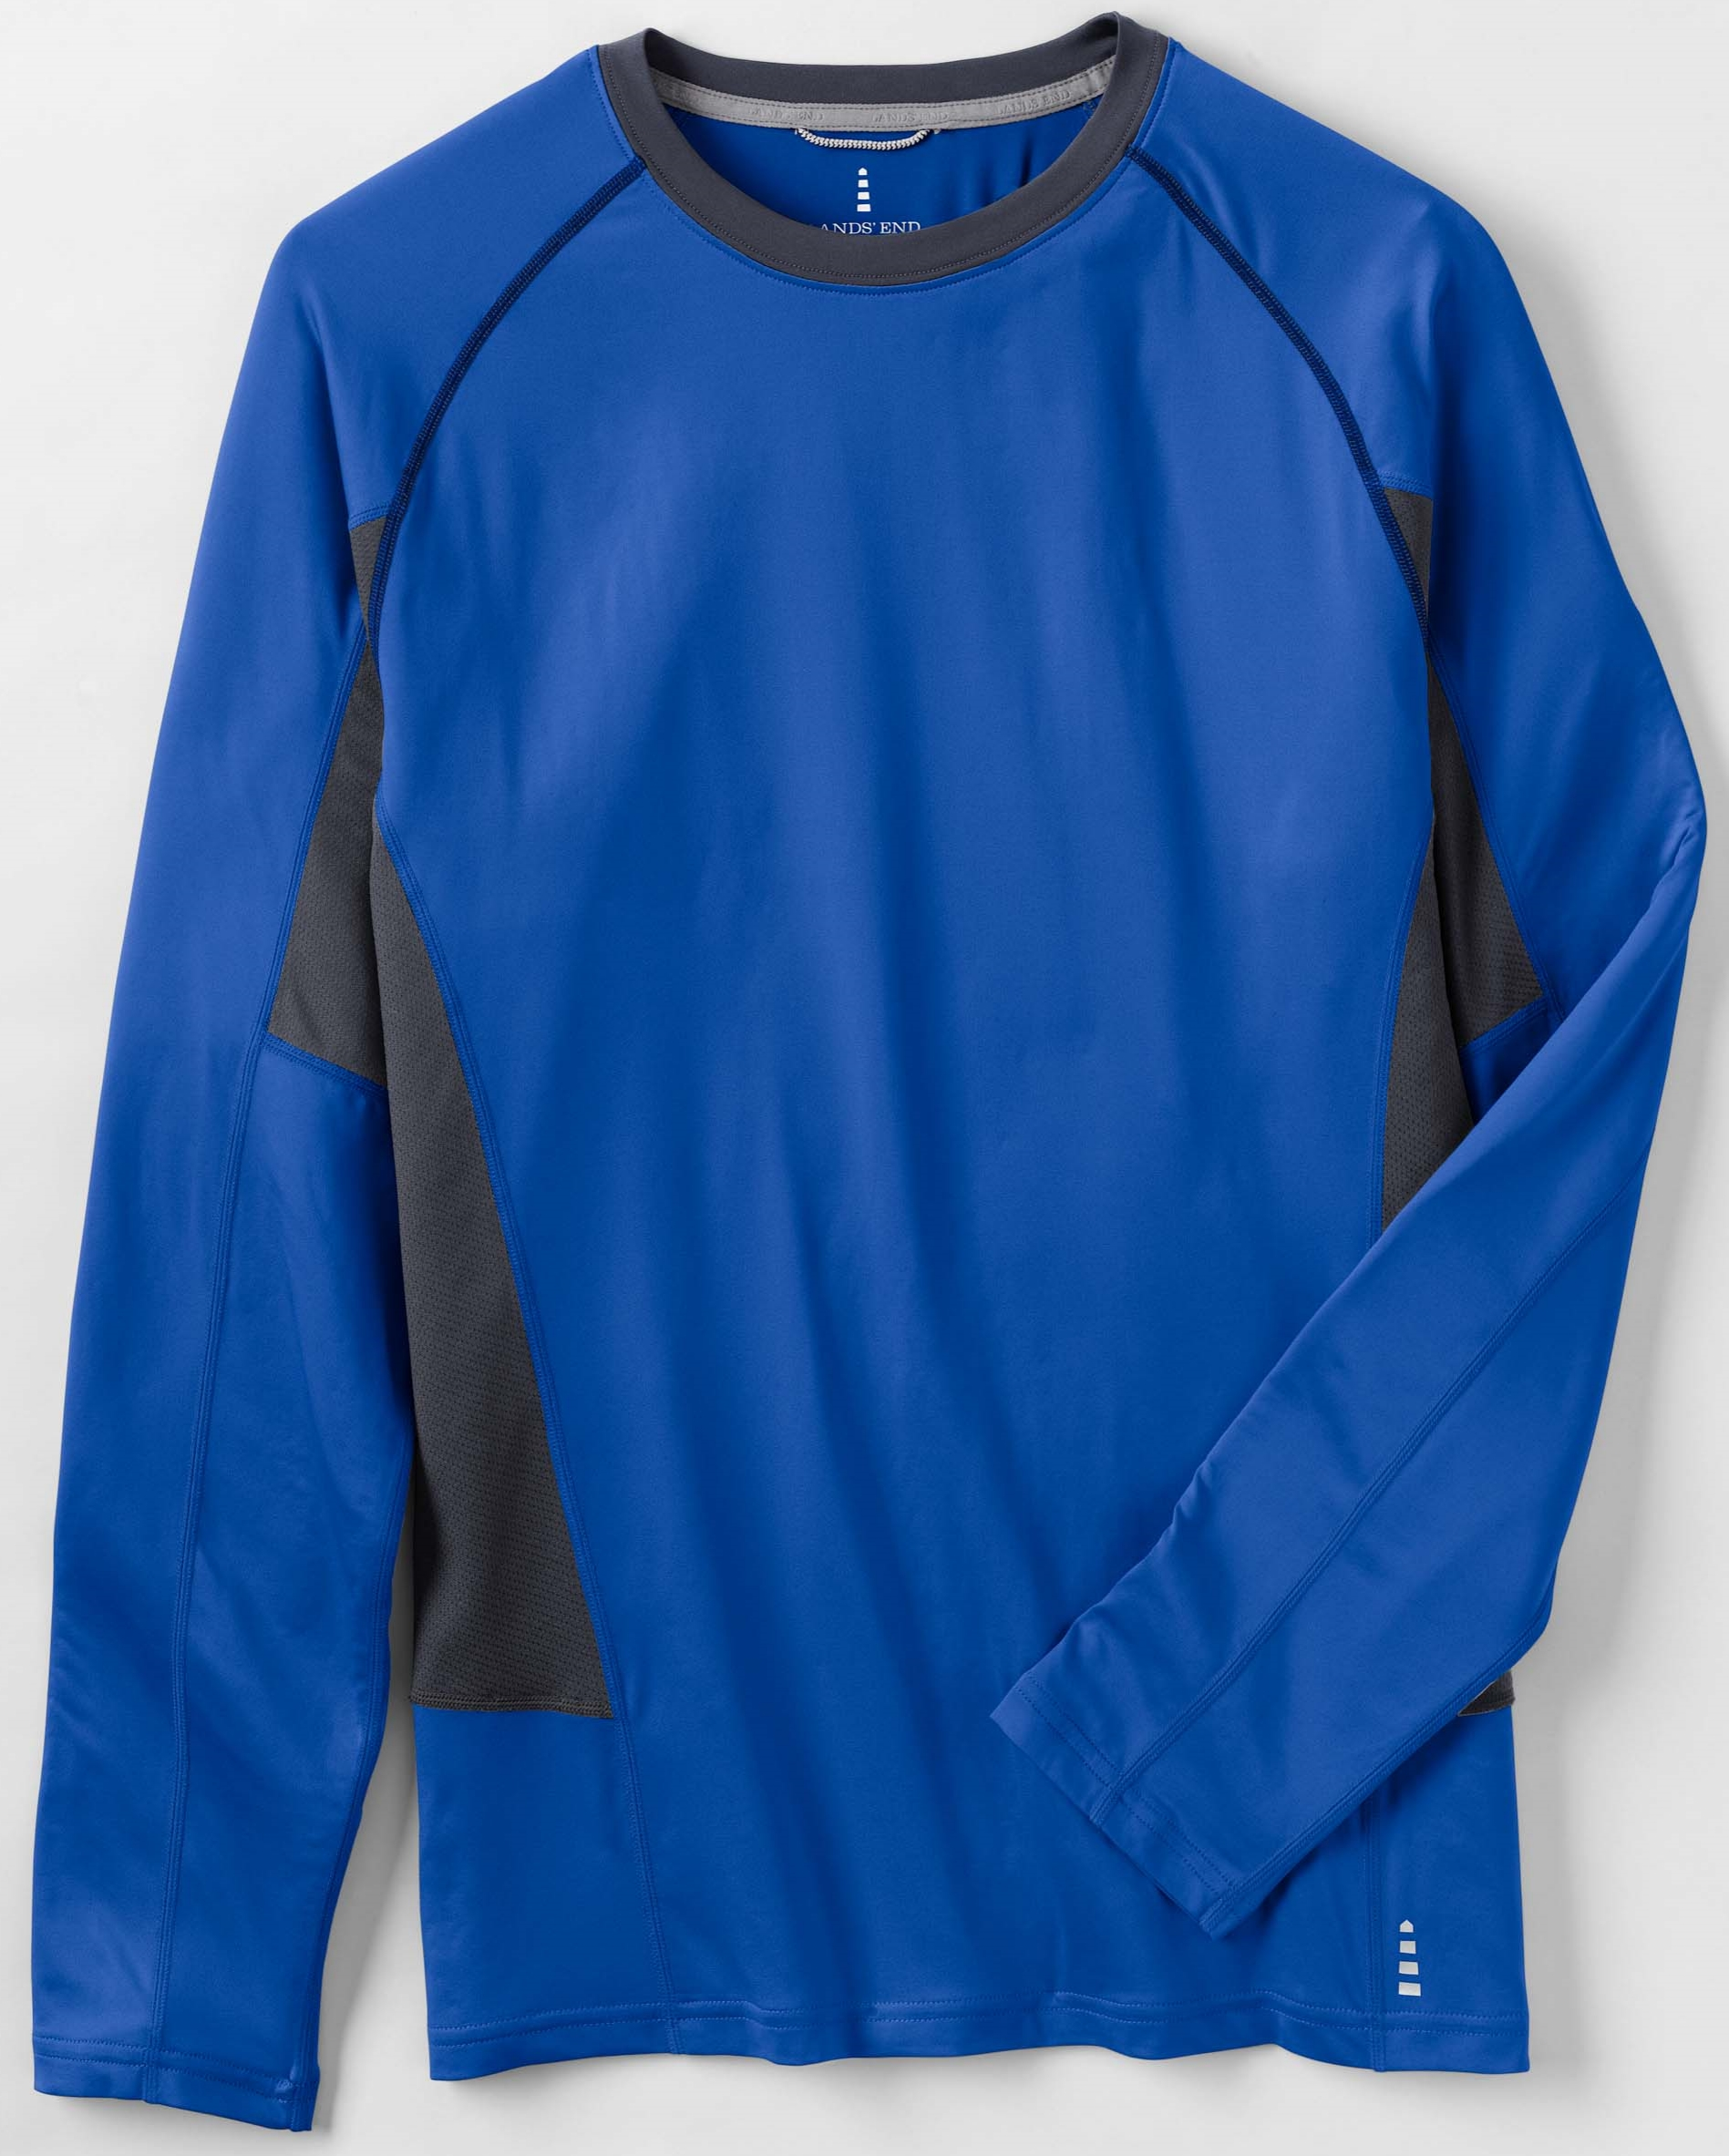 Lands' End Thermaskin Active Long Sleeve Crew, $44